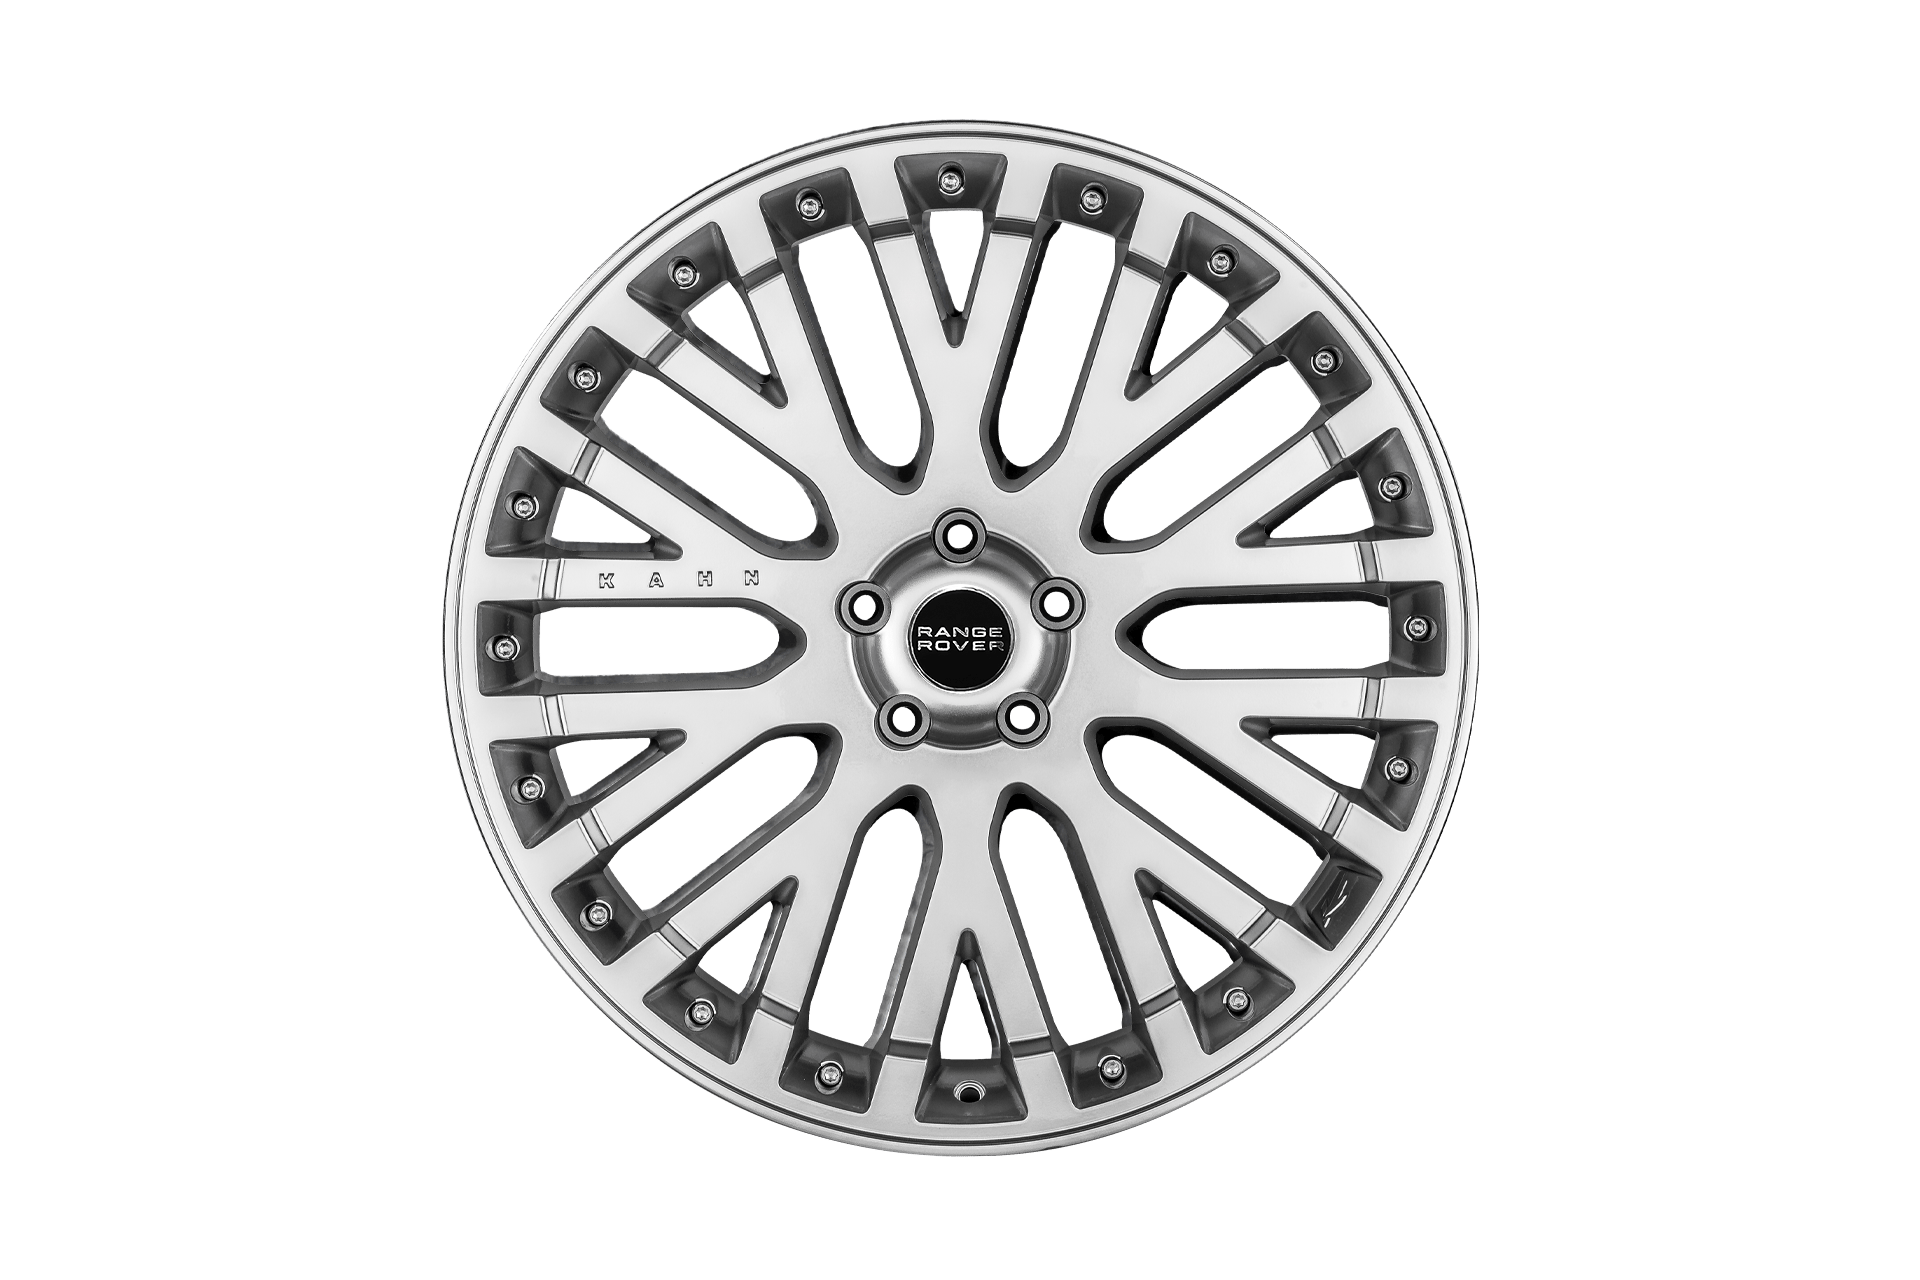 Range Rover Sport (2013-2018) Rsx Light Alloy Wheels by Kahn - Image 3506